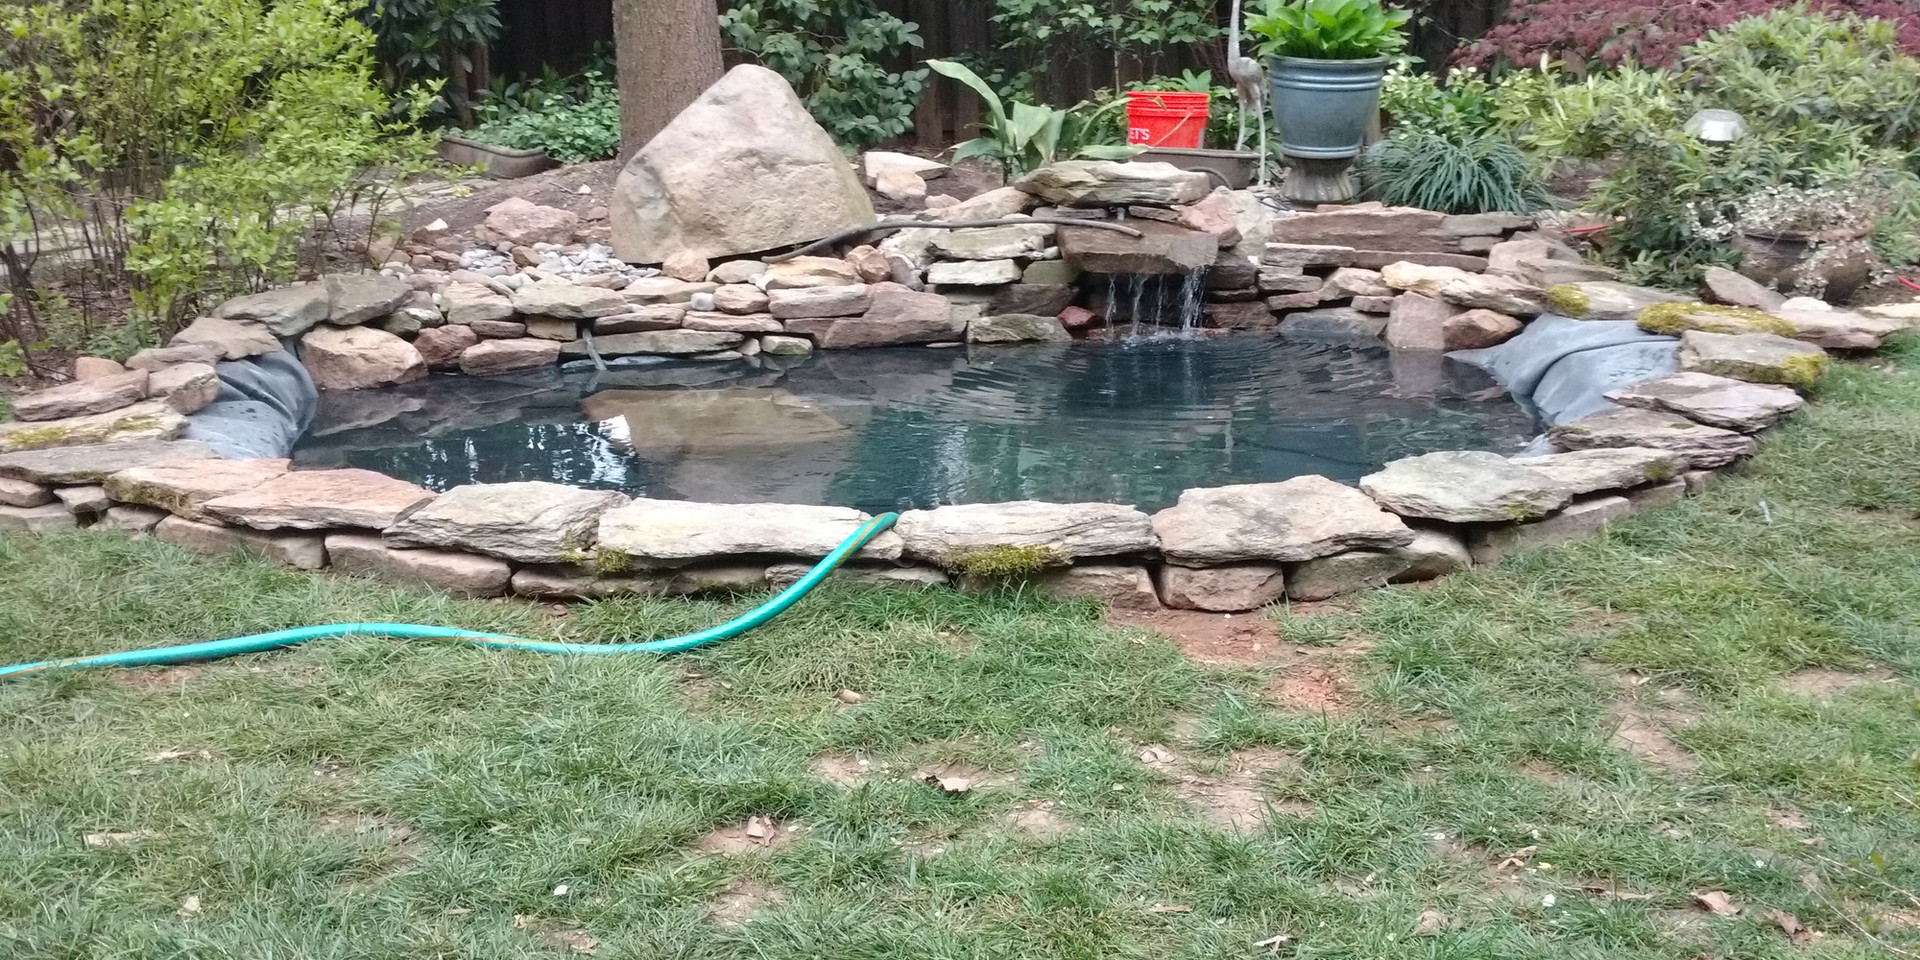 8. Pond Is Refilled